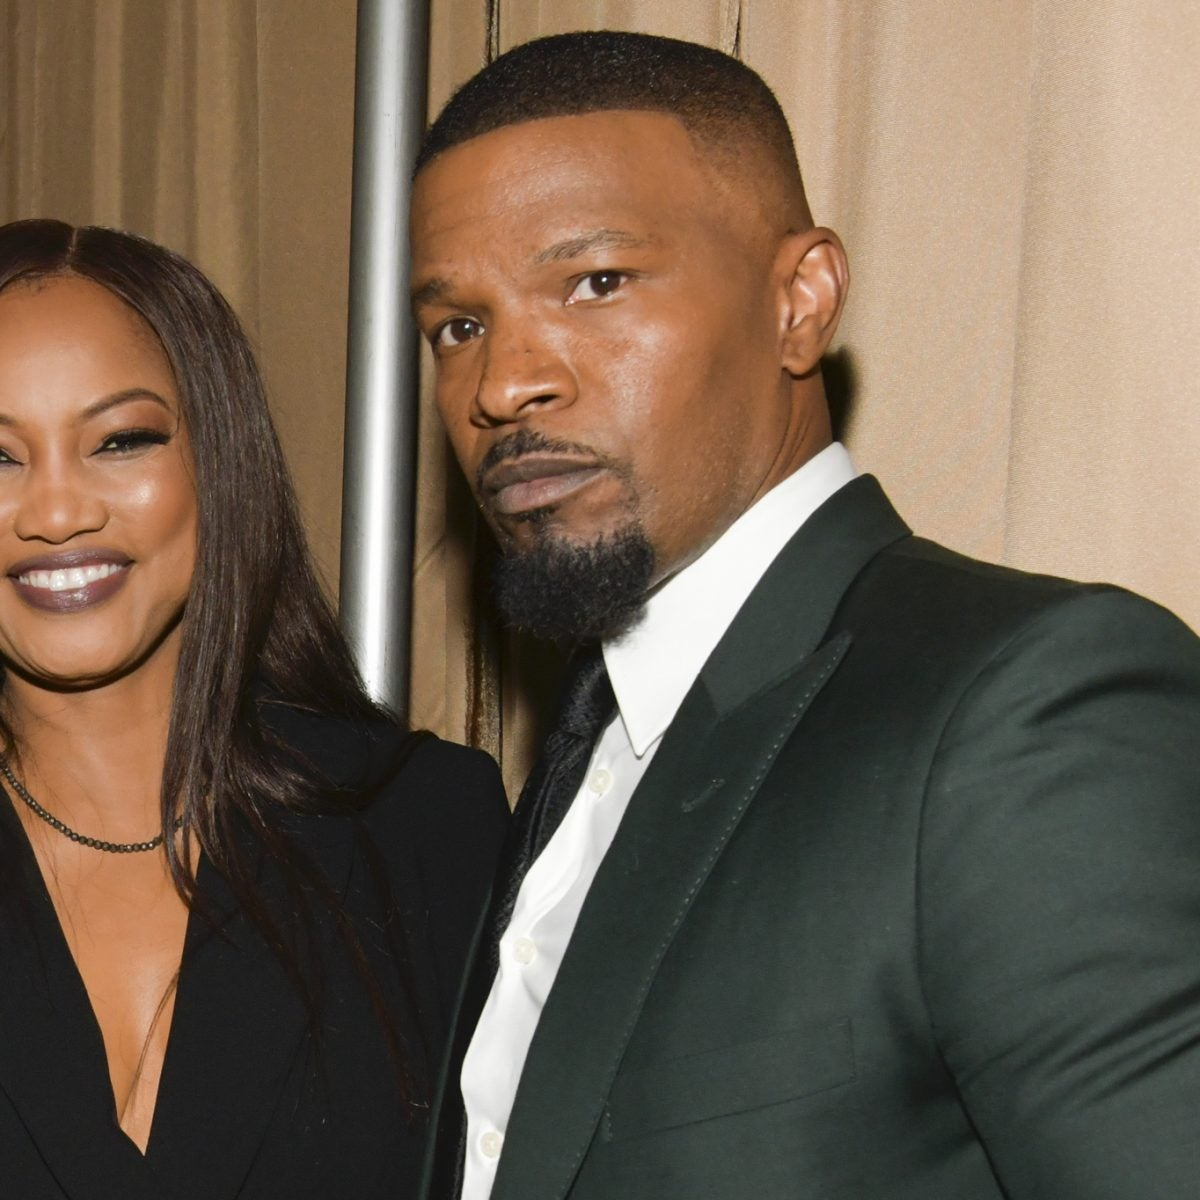 Garcelle Beauvais Just Revealed a Sexy Secret About Jamie Foxx (Her Crush)